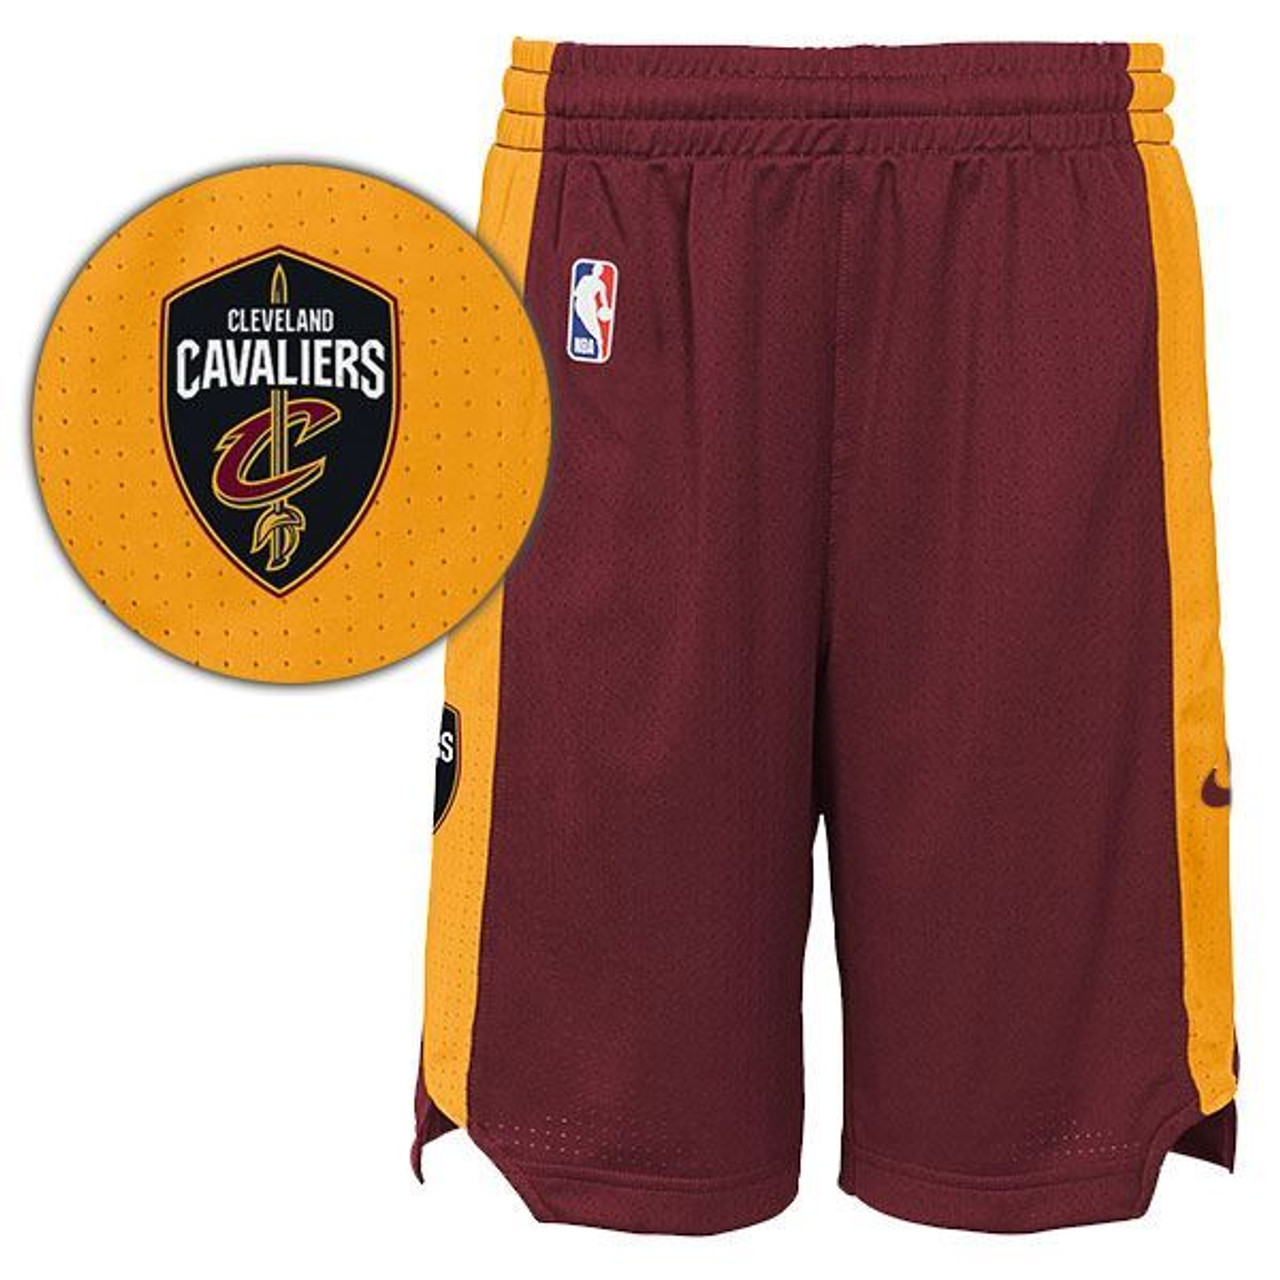 98a6e135a2 Big Kids Nike Pro Mesh Practice Shorts - Cleveland Cavaliers